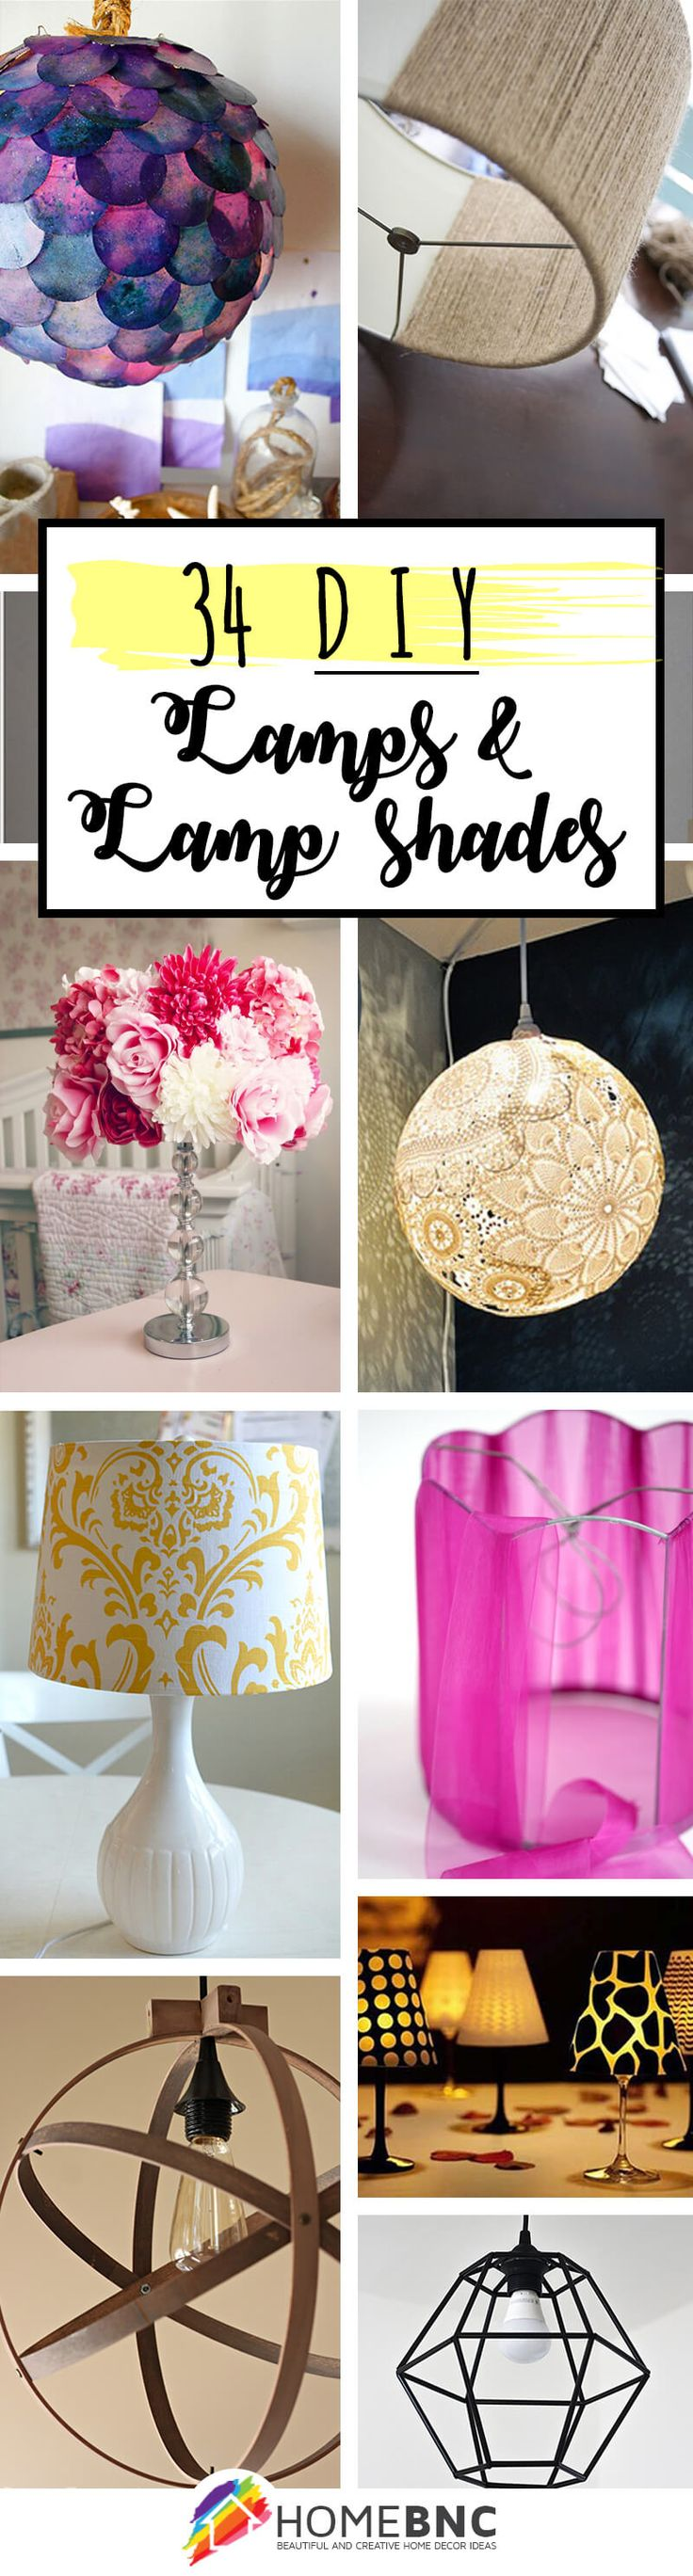 25 best ideas about recover lamp shades on pinterest for Diy lampshade ideas